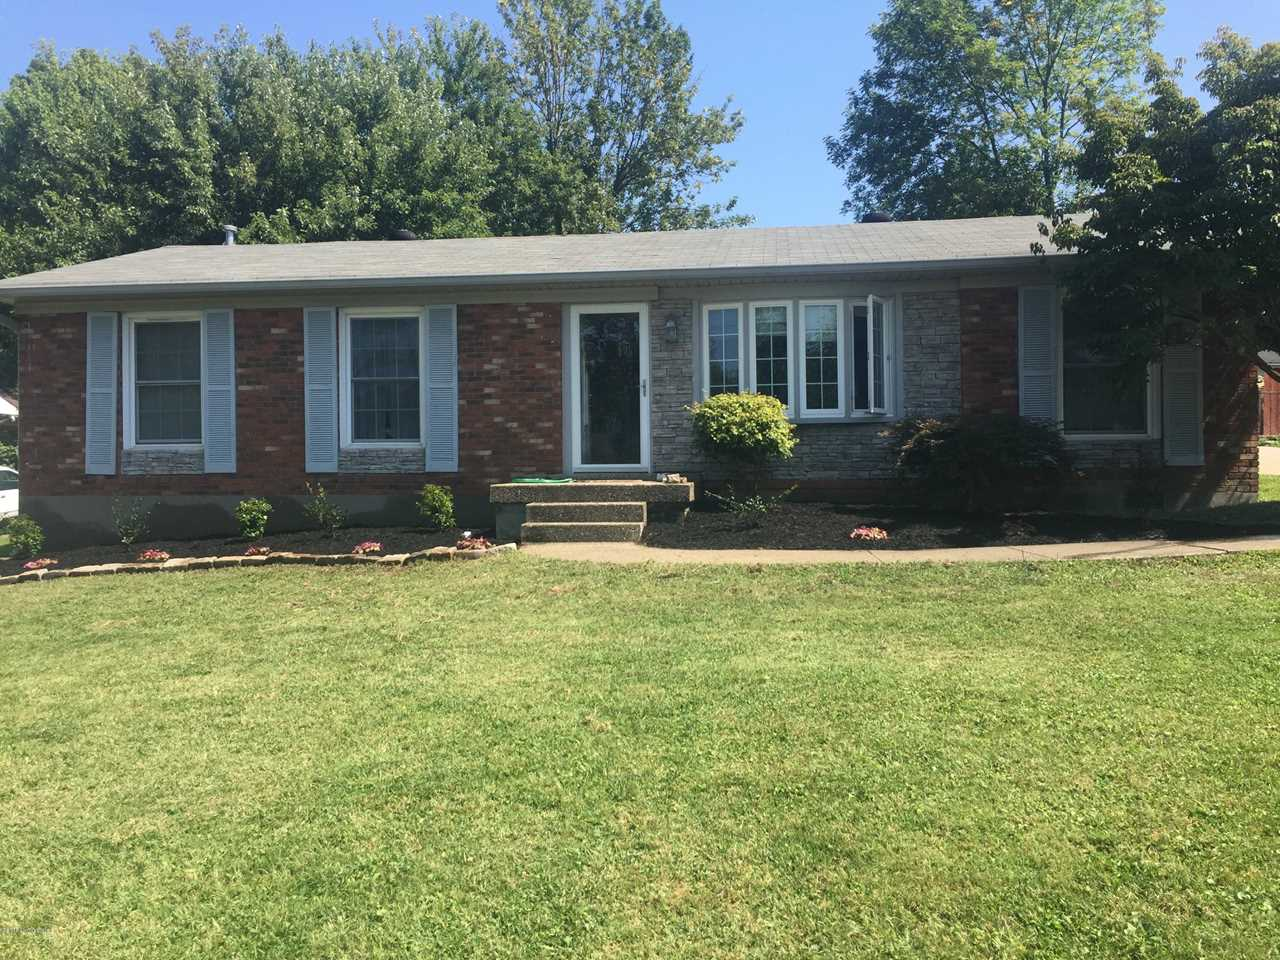 7403 Beechdale Rd Crestwood, KY 40014 | MLS 1521075 Photo 1